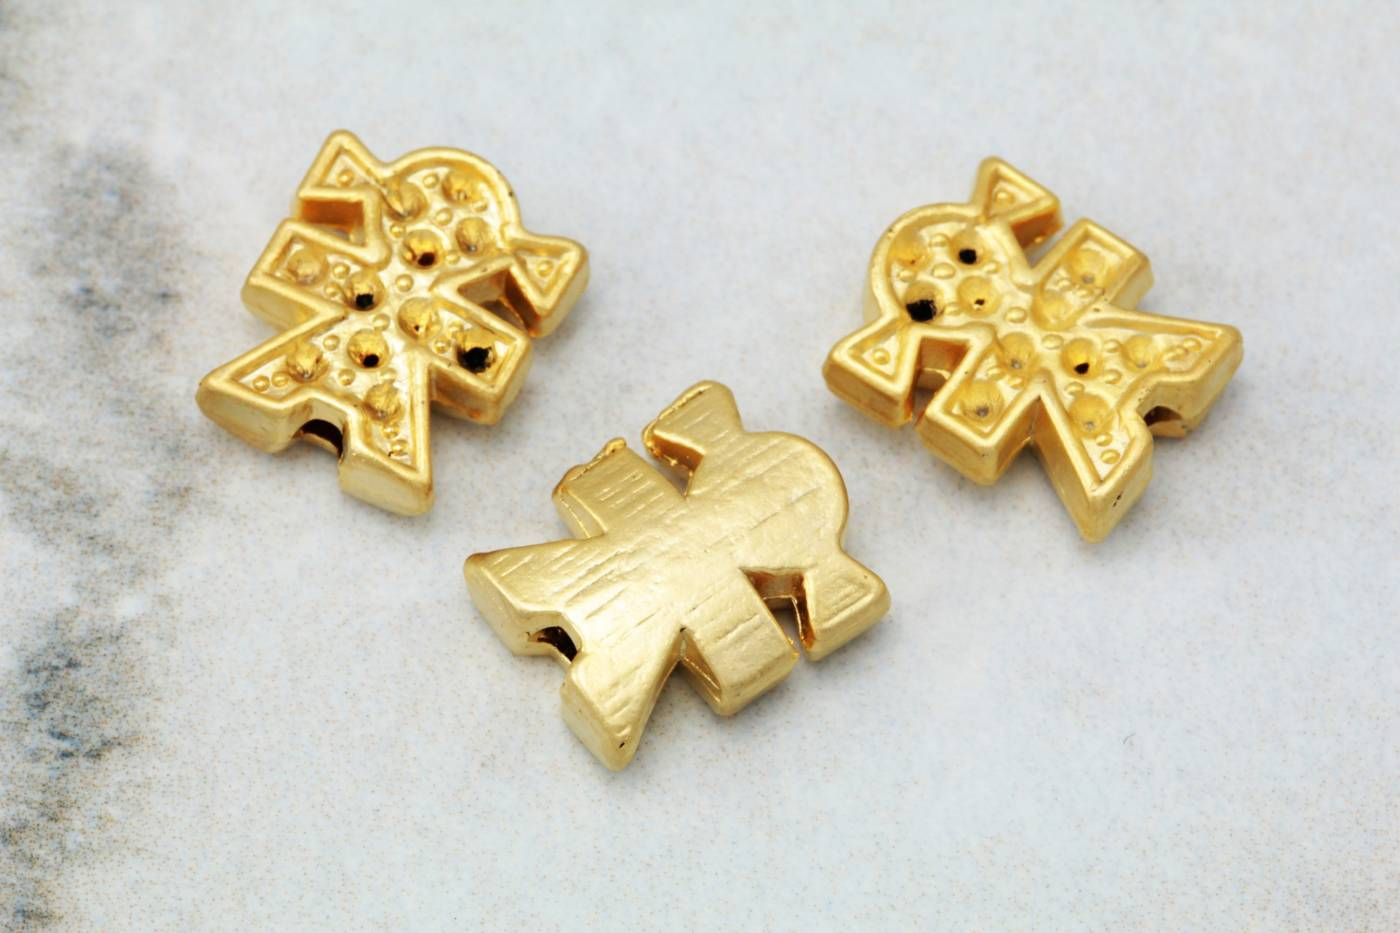 gold-girl-charms-cchange-jewelry-charms.jpg